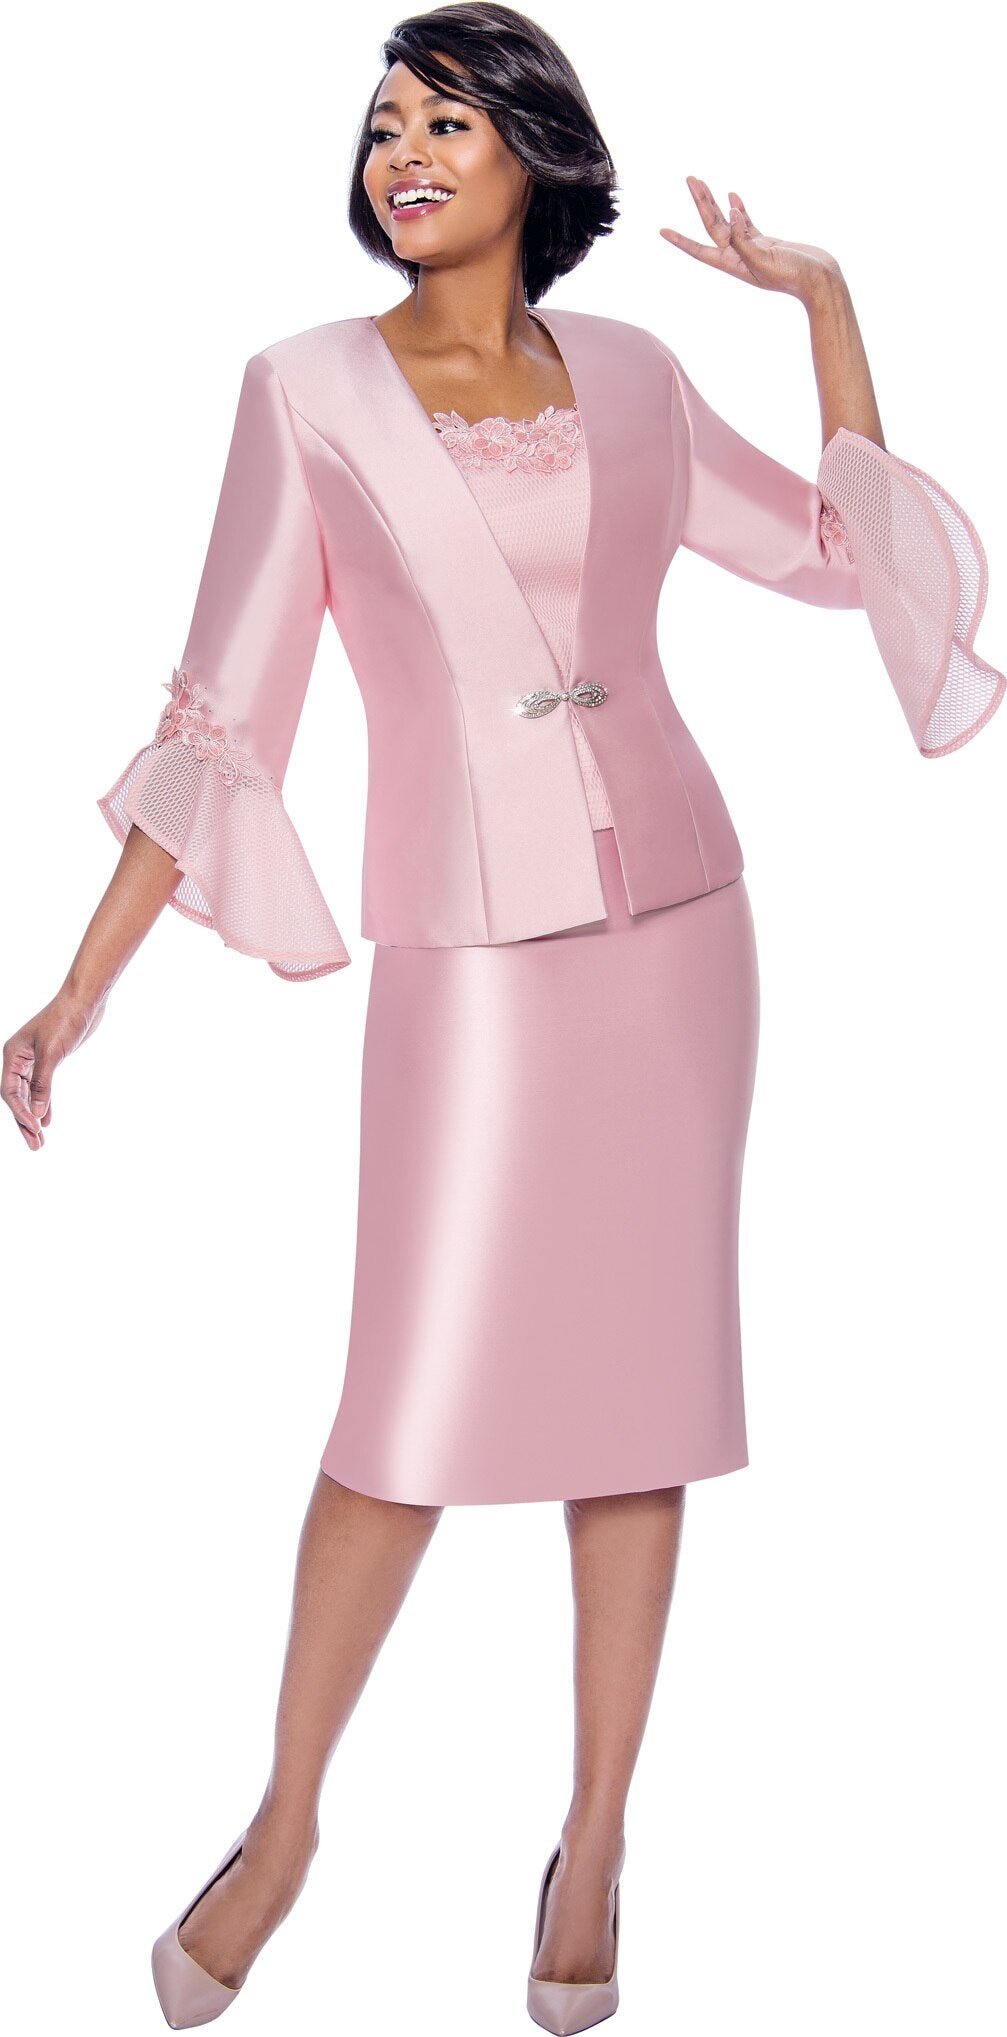 Terramina Suit 7810-Rose - Church Suits For Less